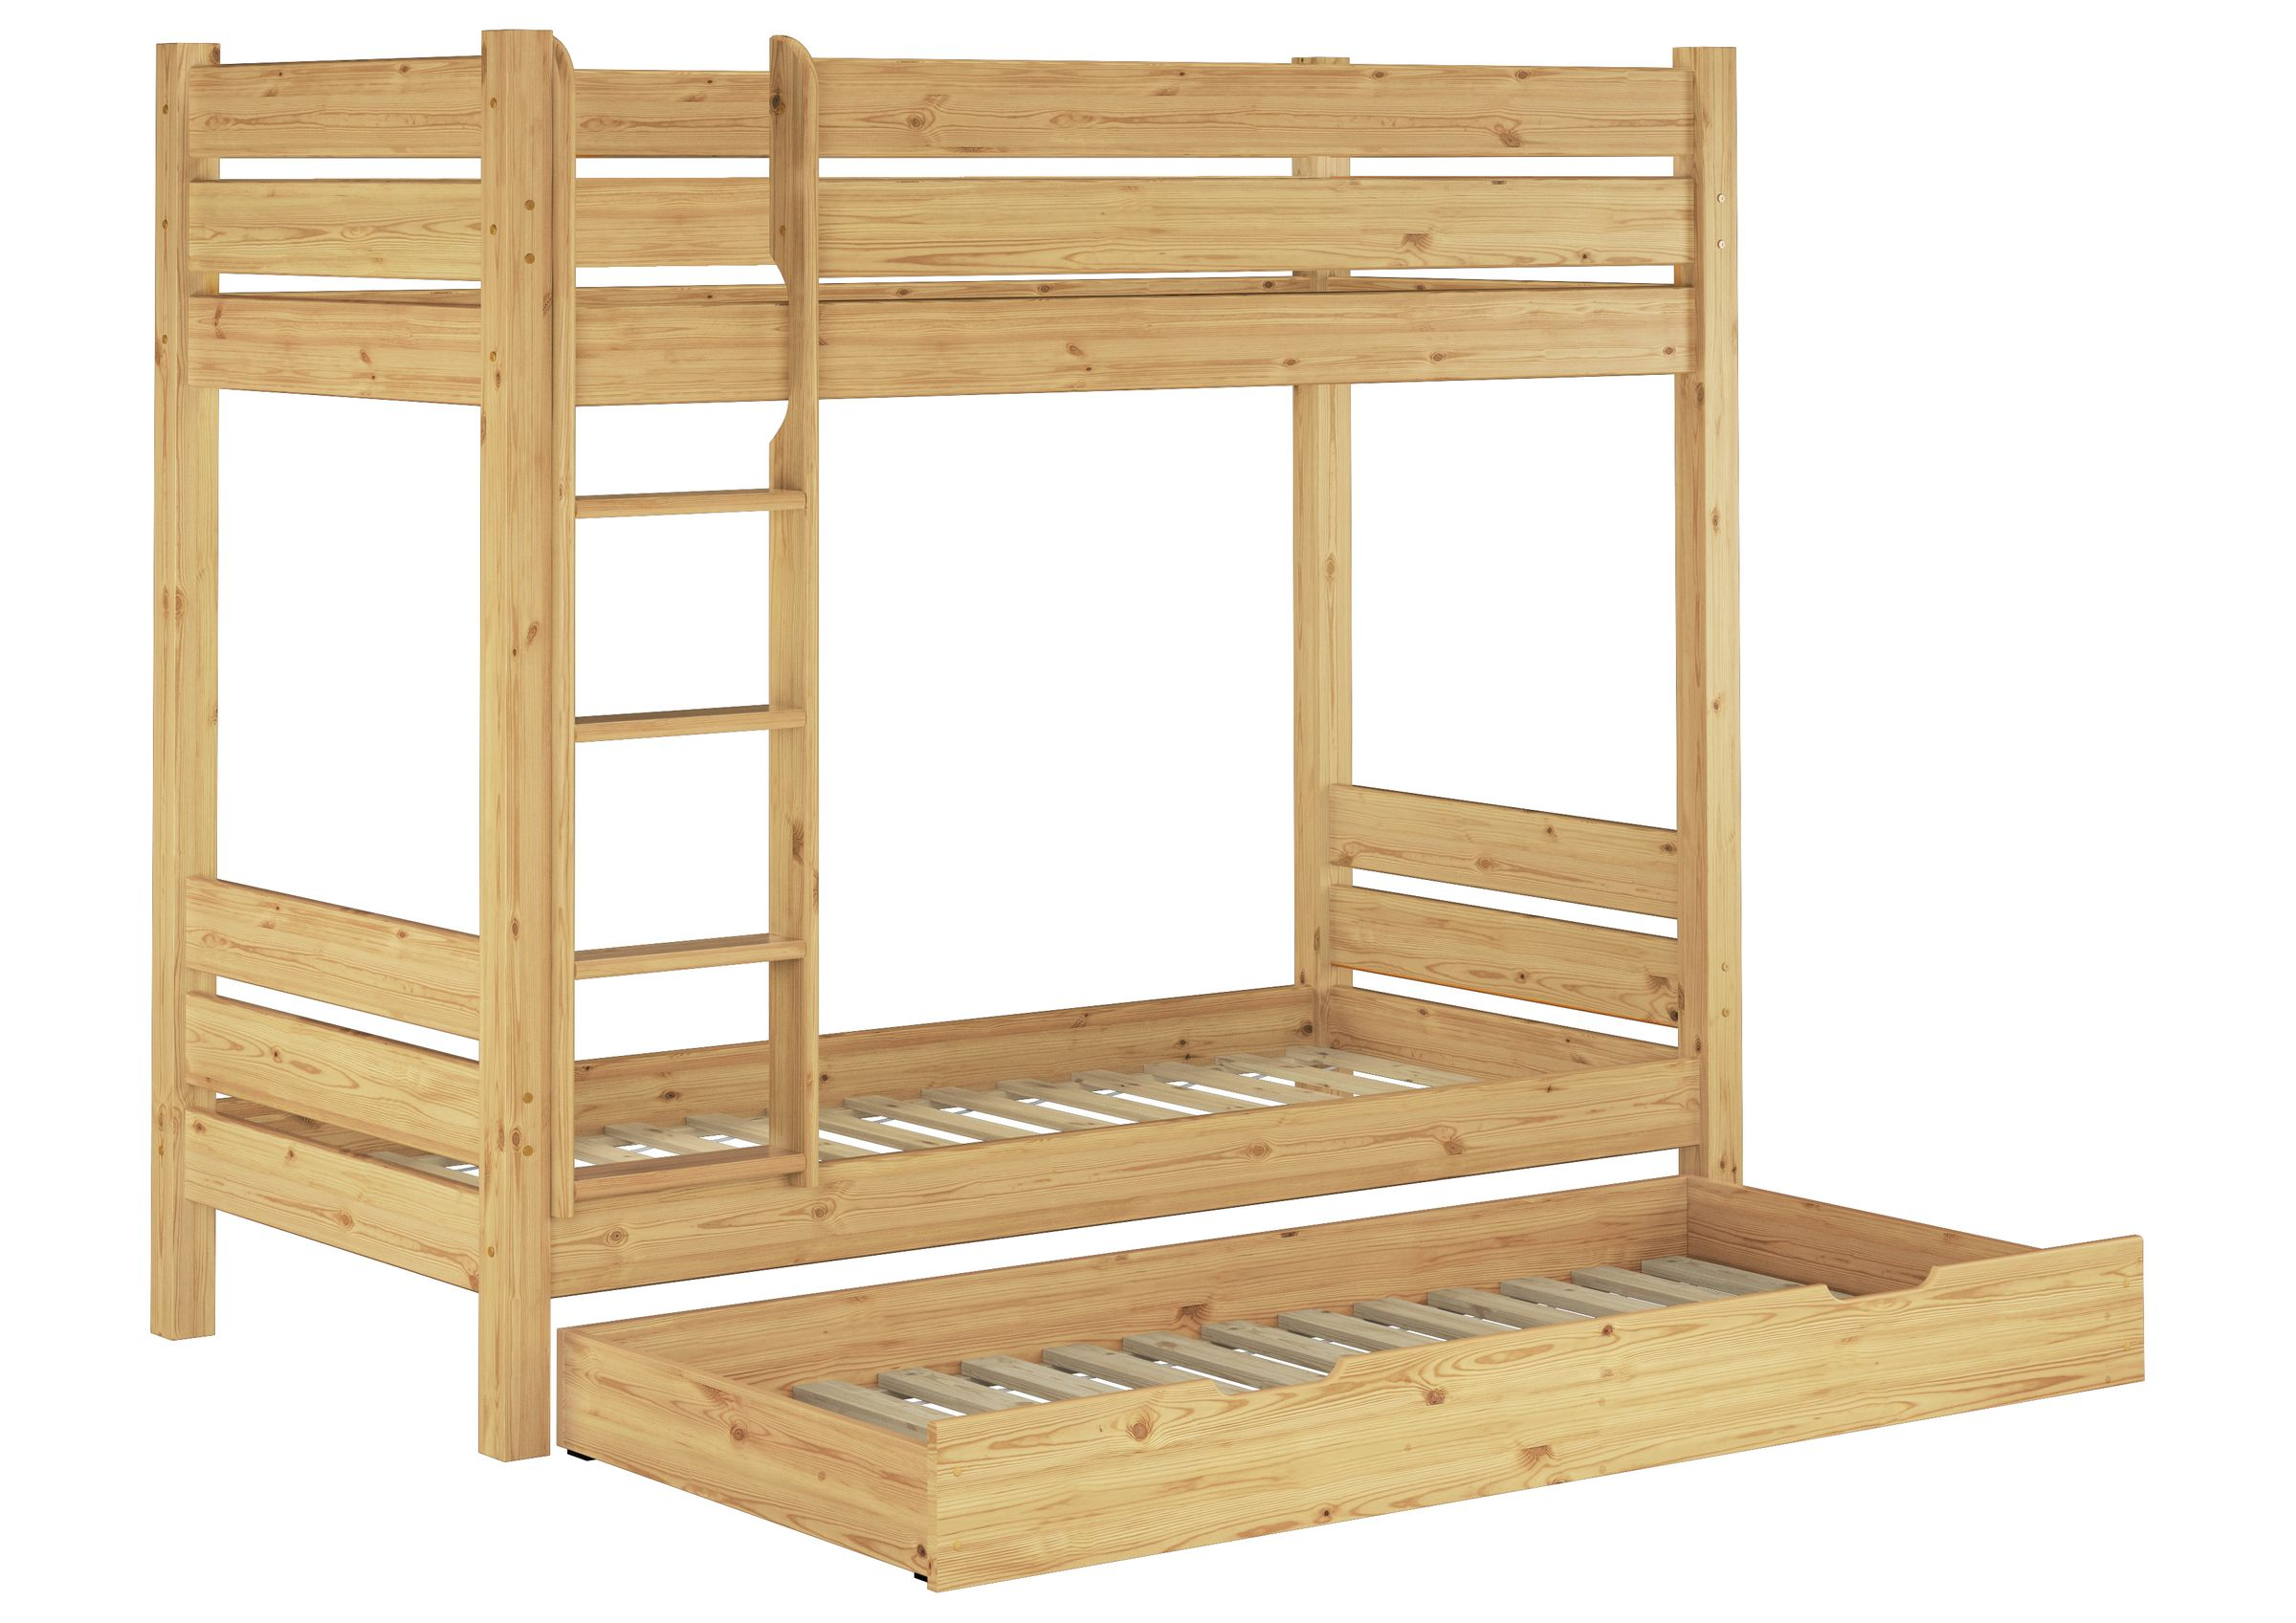 Picture of: Solid Bunk Bed Of Pine 90×200 Also For Adults With Slats 3 Mattresses Bed Drawer 60 16 09ms7m Ceres Webshop